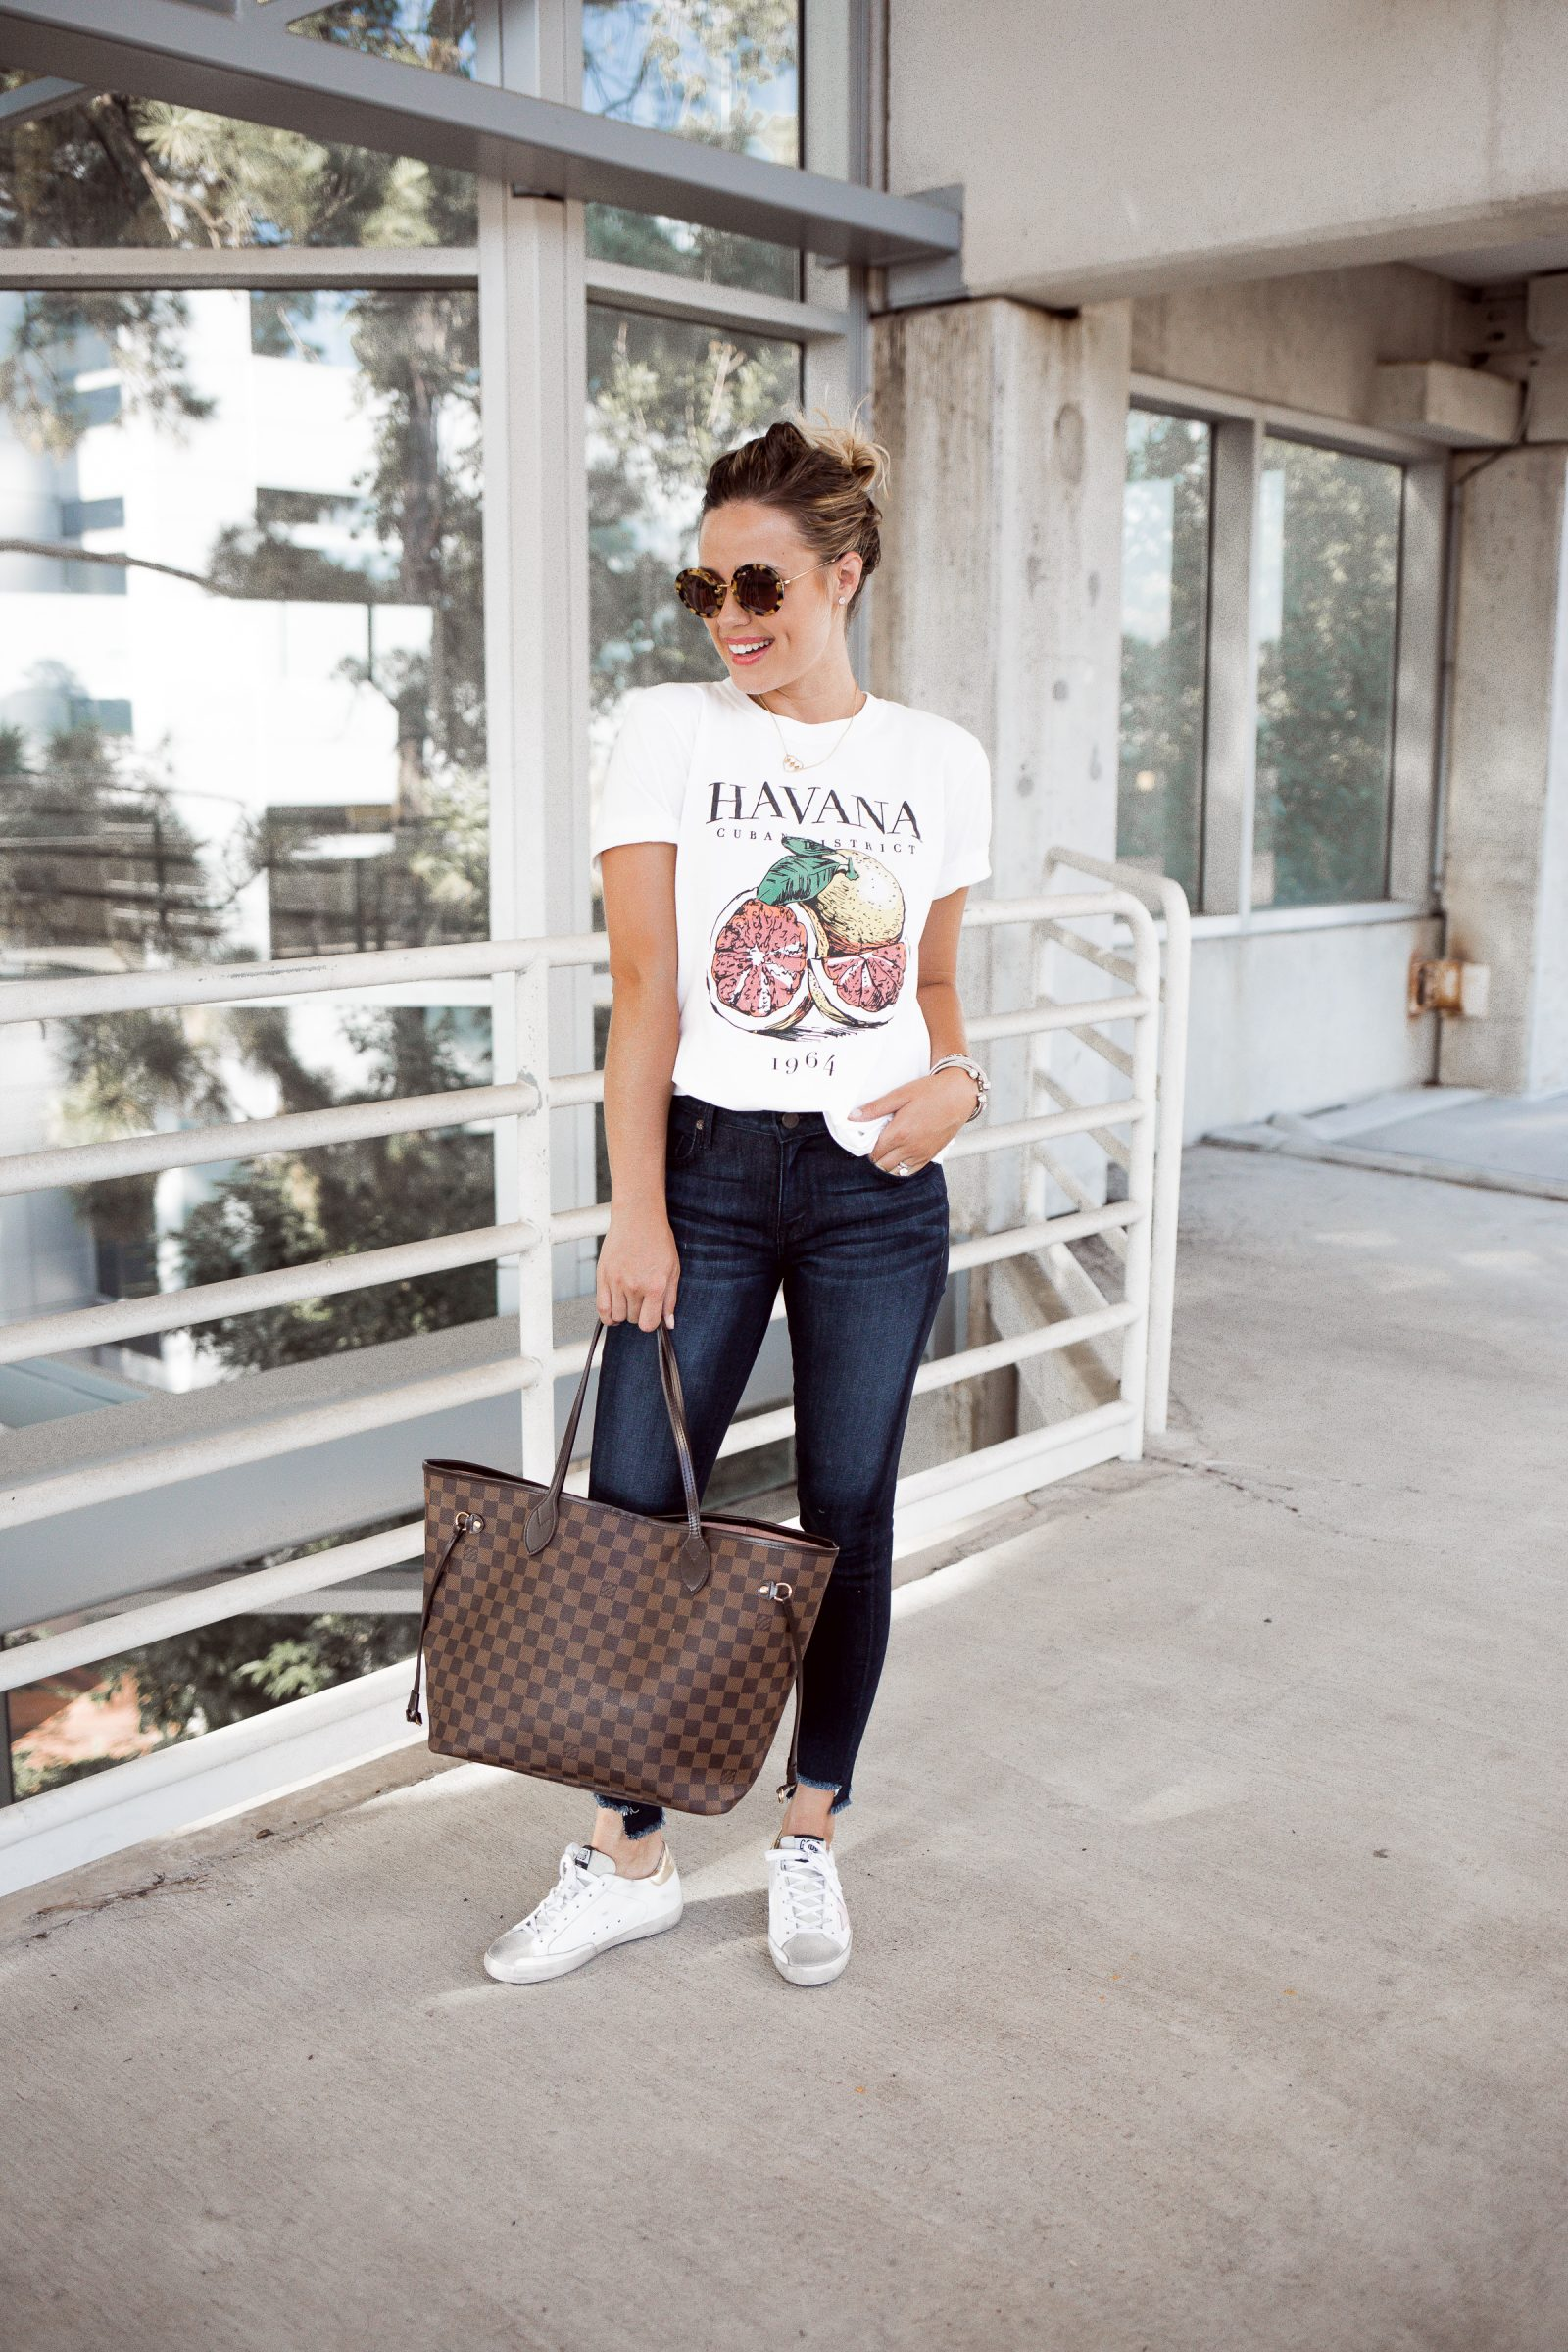 Houston fashion blogger Elly brown wears a graphic tee with denim for a casual look